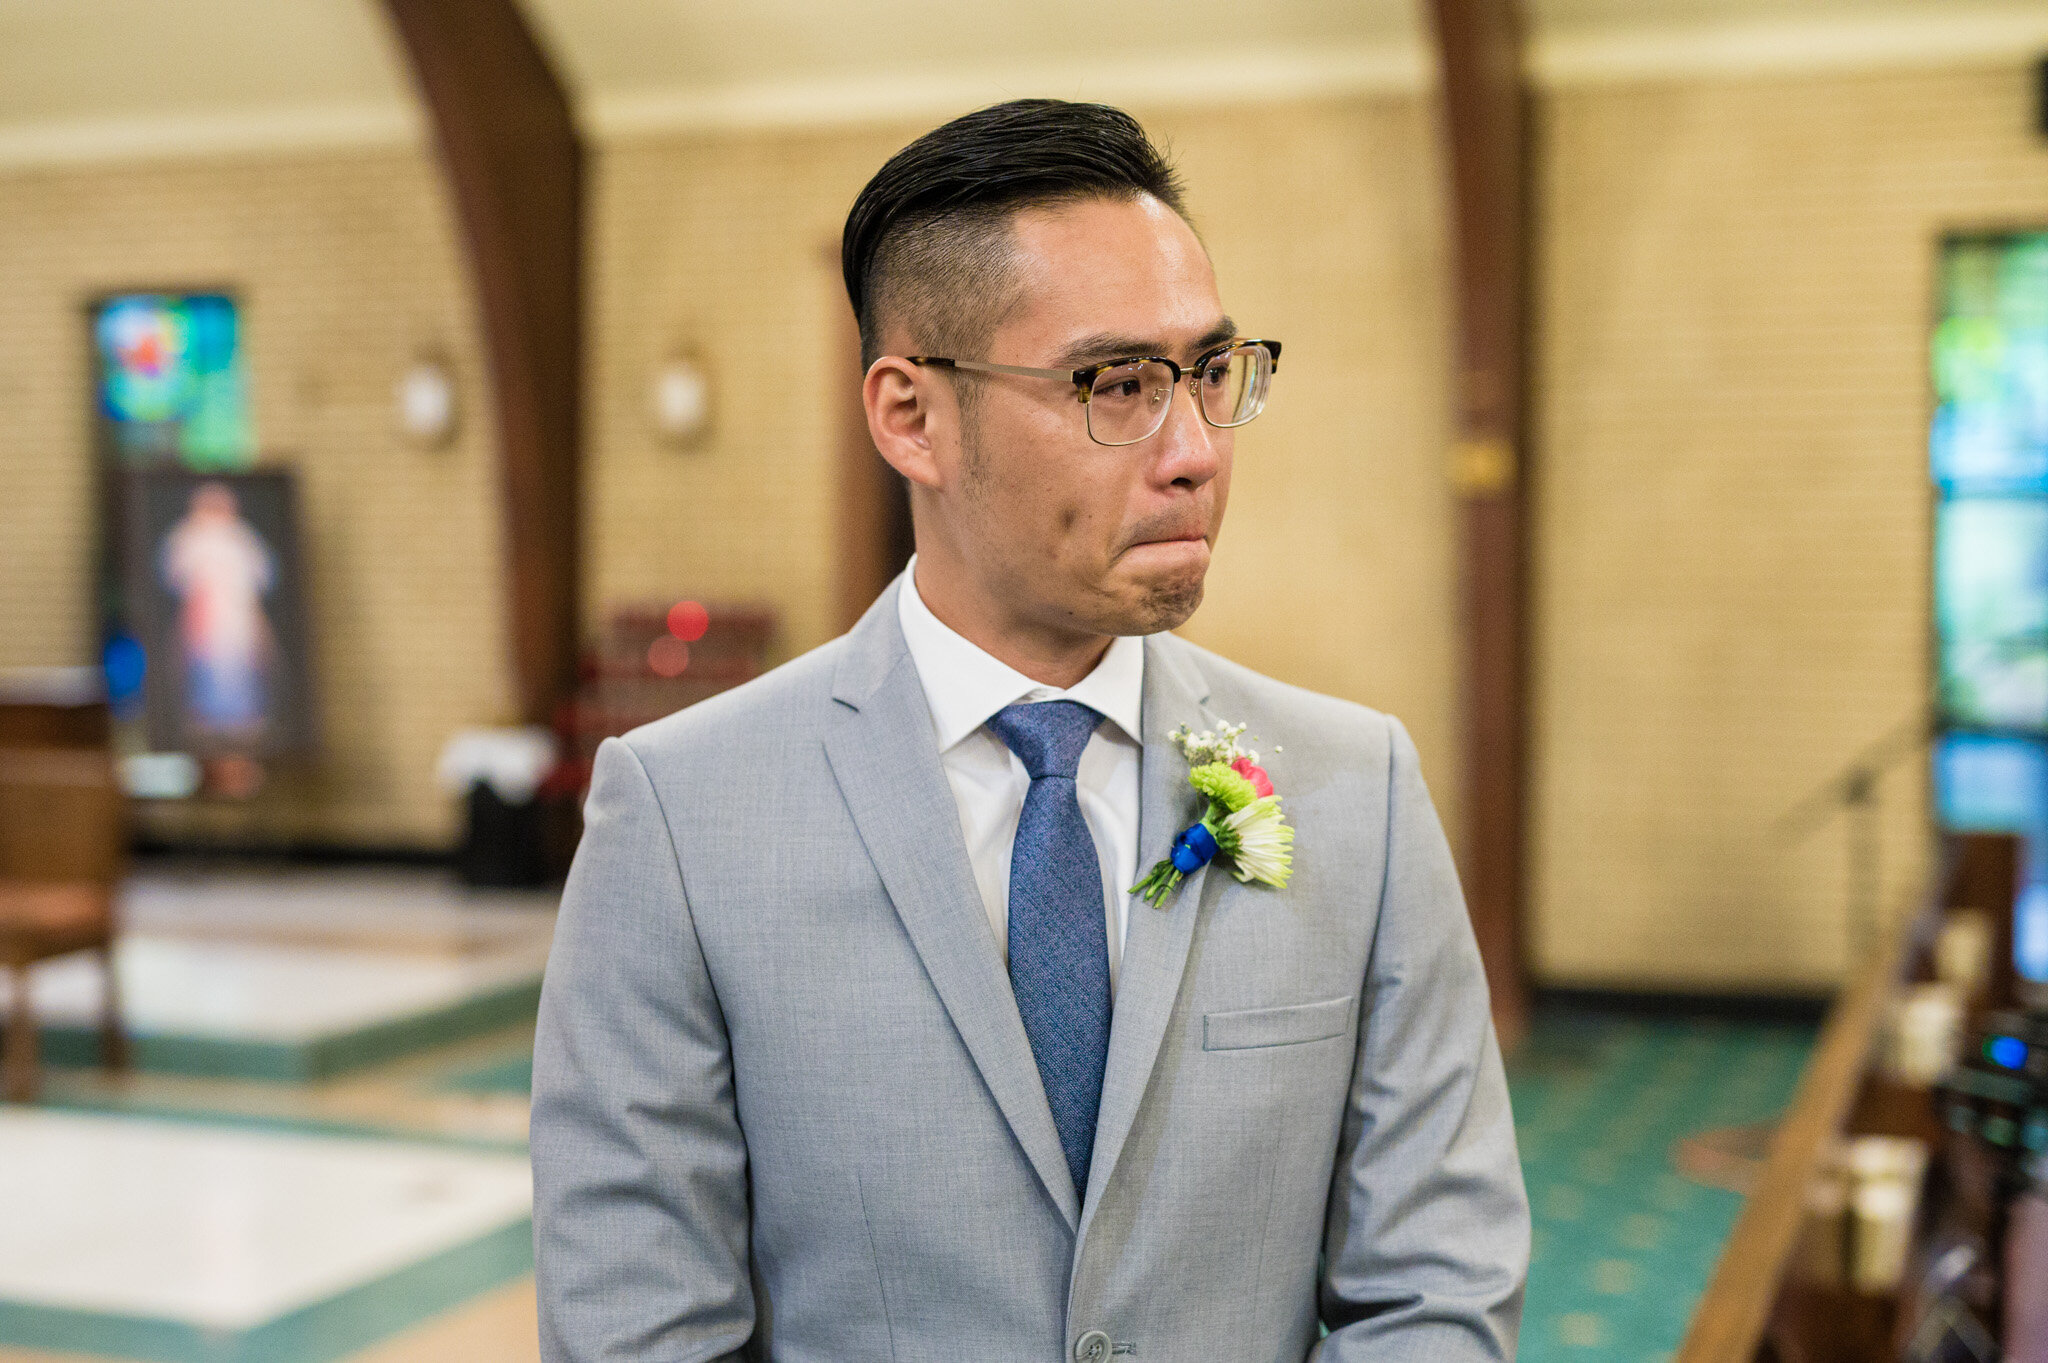 A groom's emotional reaction to seeing his bride walking down the aisle